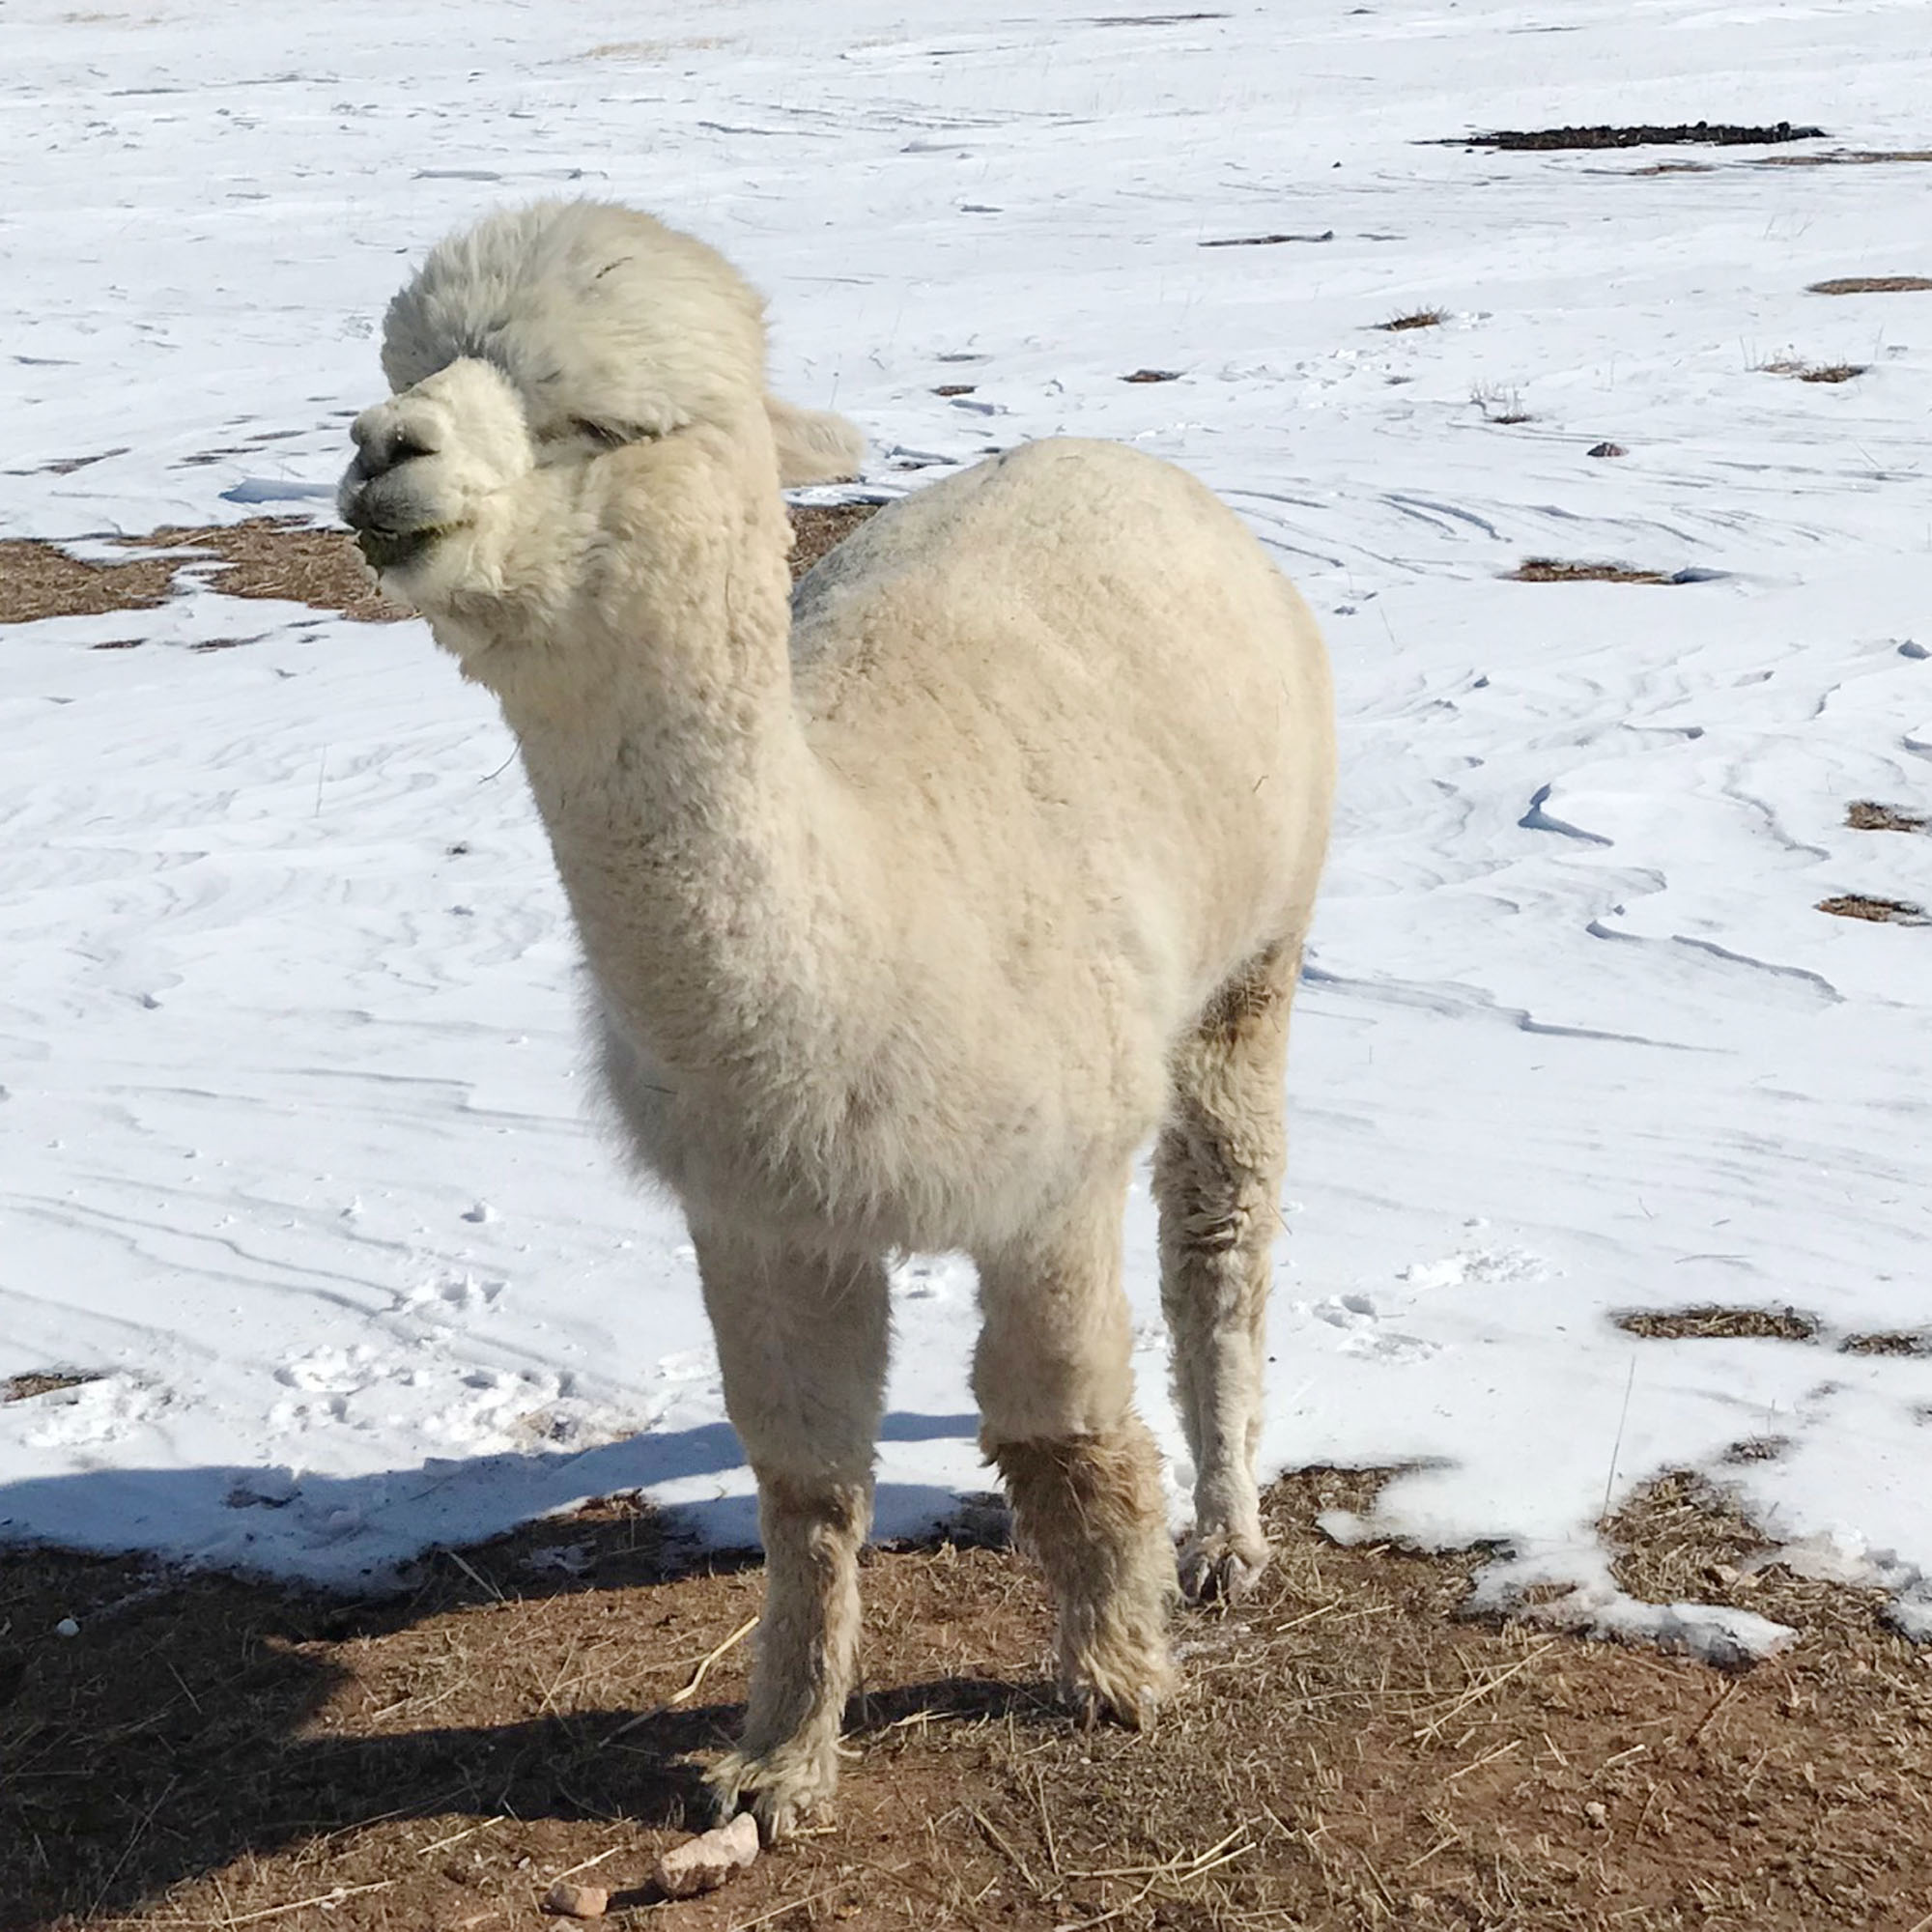 Filbert the alpaca